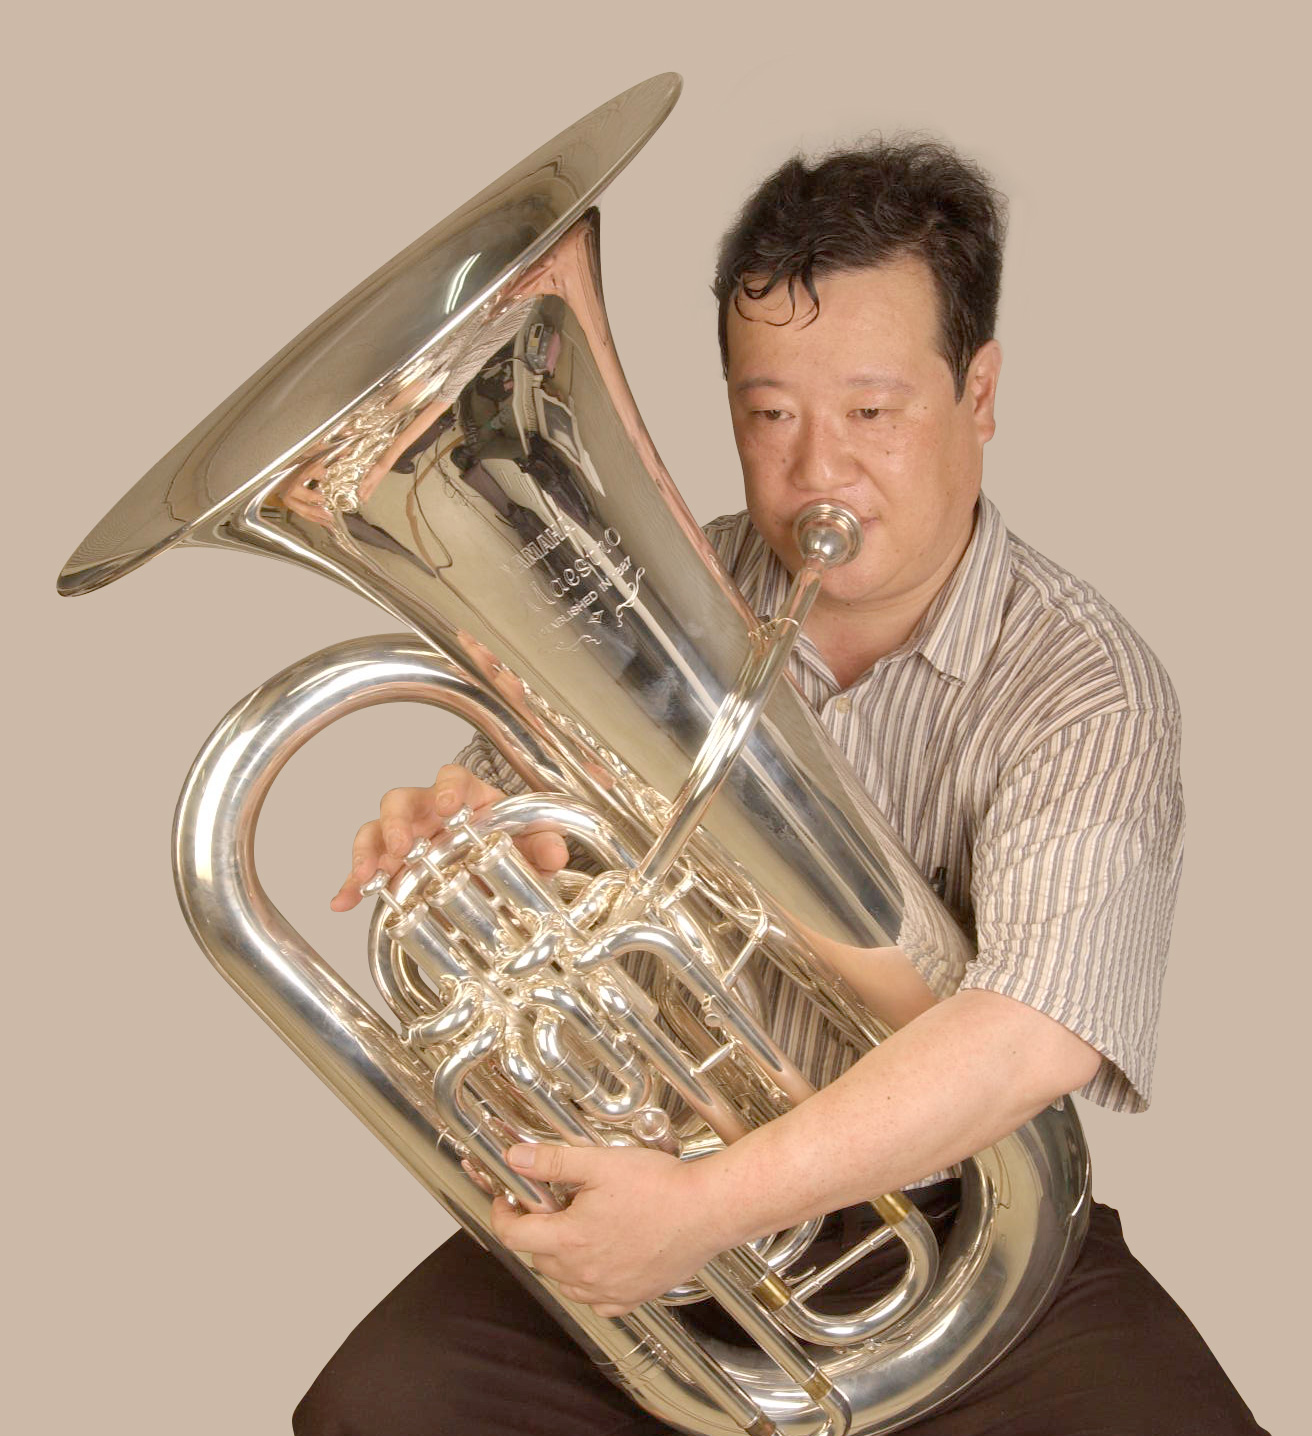 Top-action tubas have the bell on the player's right side